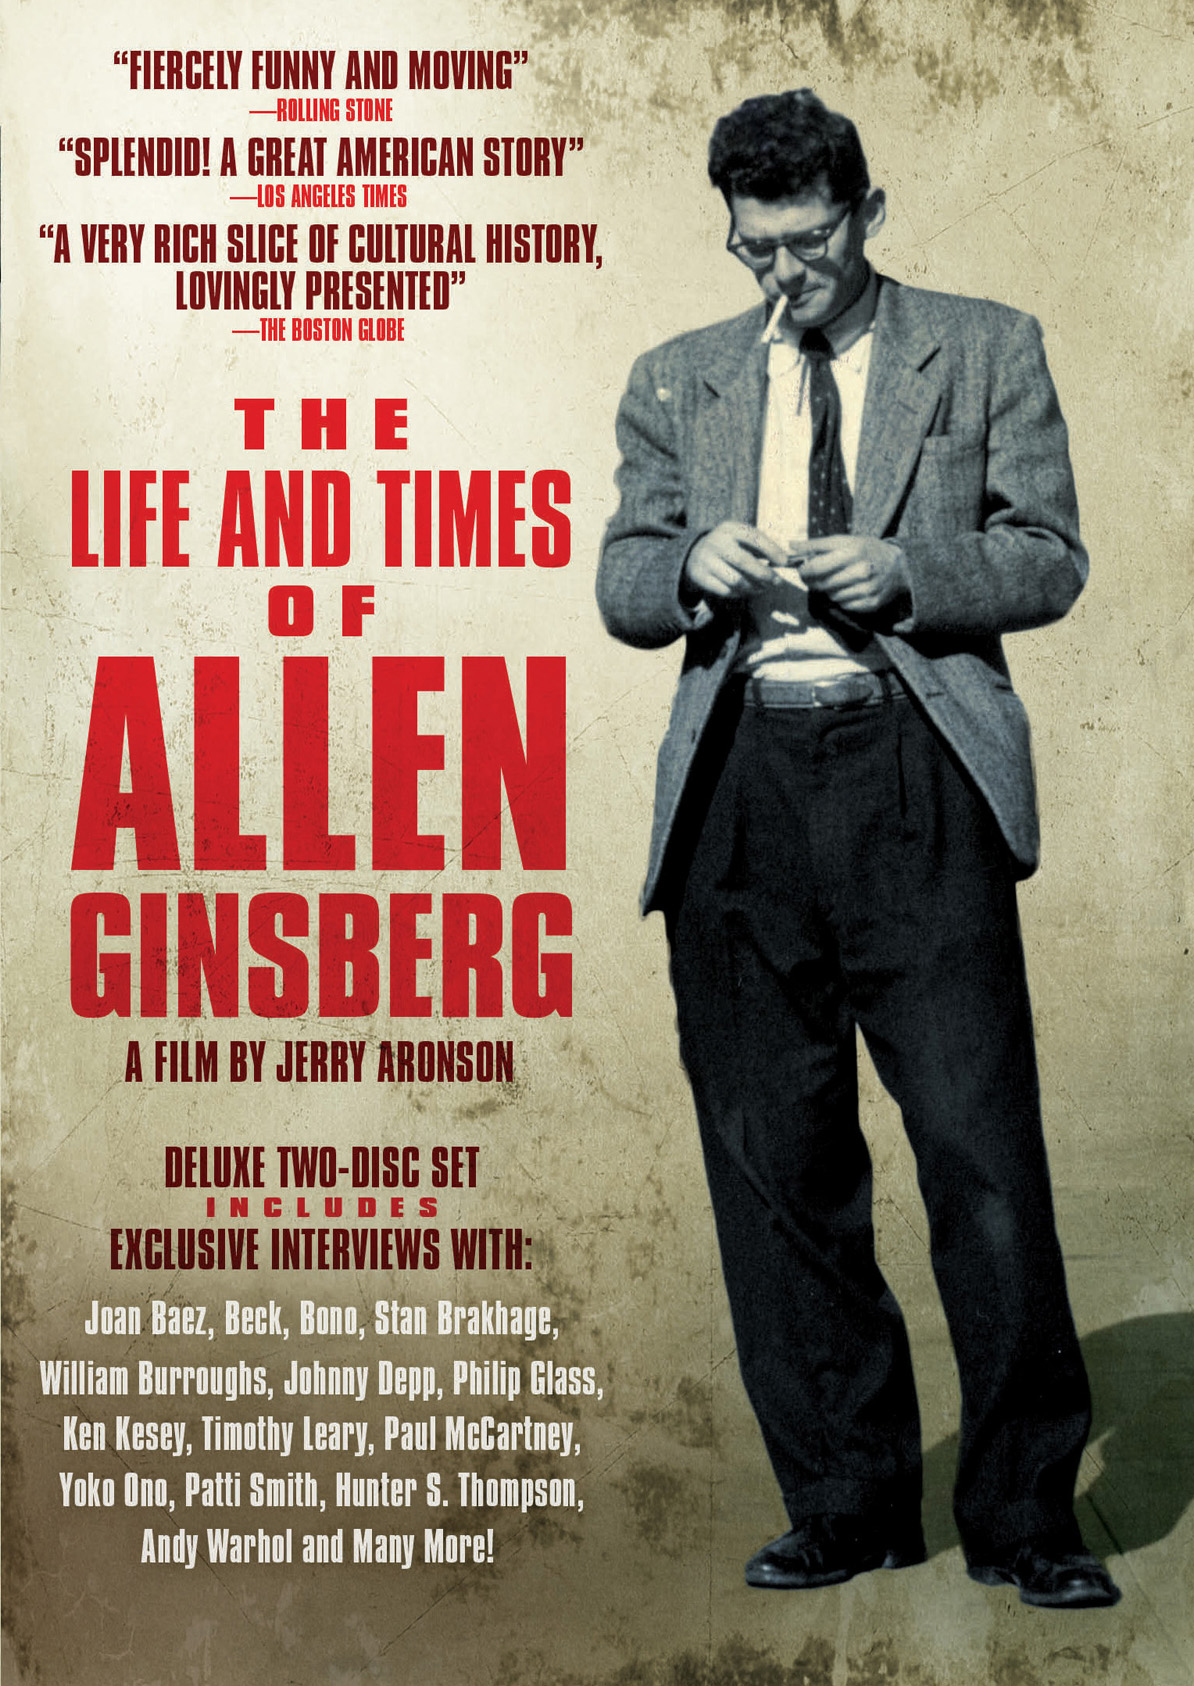 the life and career of allen ginsburg A conversation with justice ruth bader ginsburg--the  discuss her life and career justice ginsburg was named one  a conversation with danielle allen.